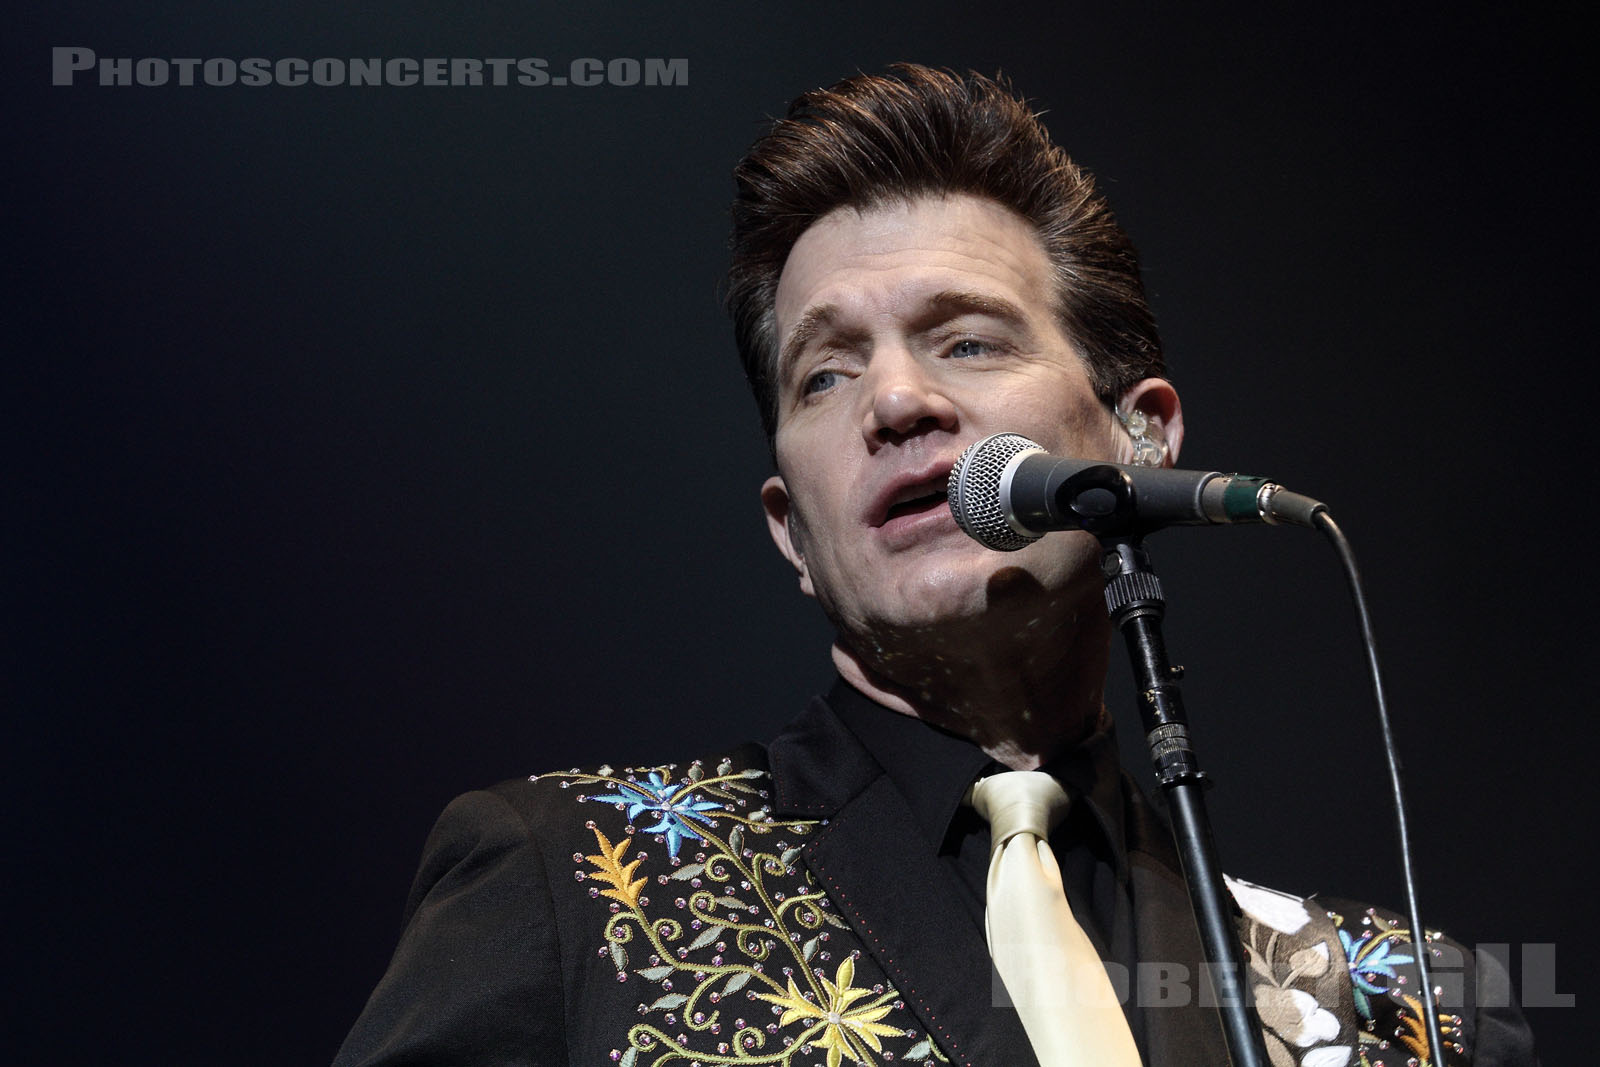 CHRIS ISAAK - 2012-10-12 - PARIS - Grand Rex